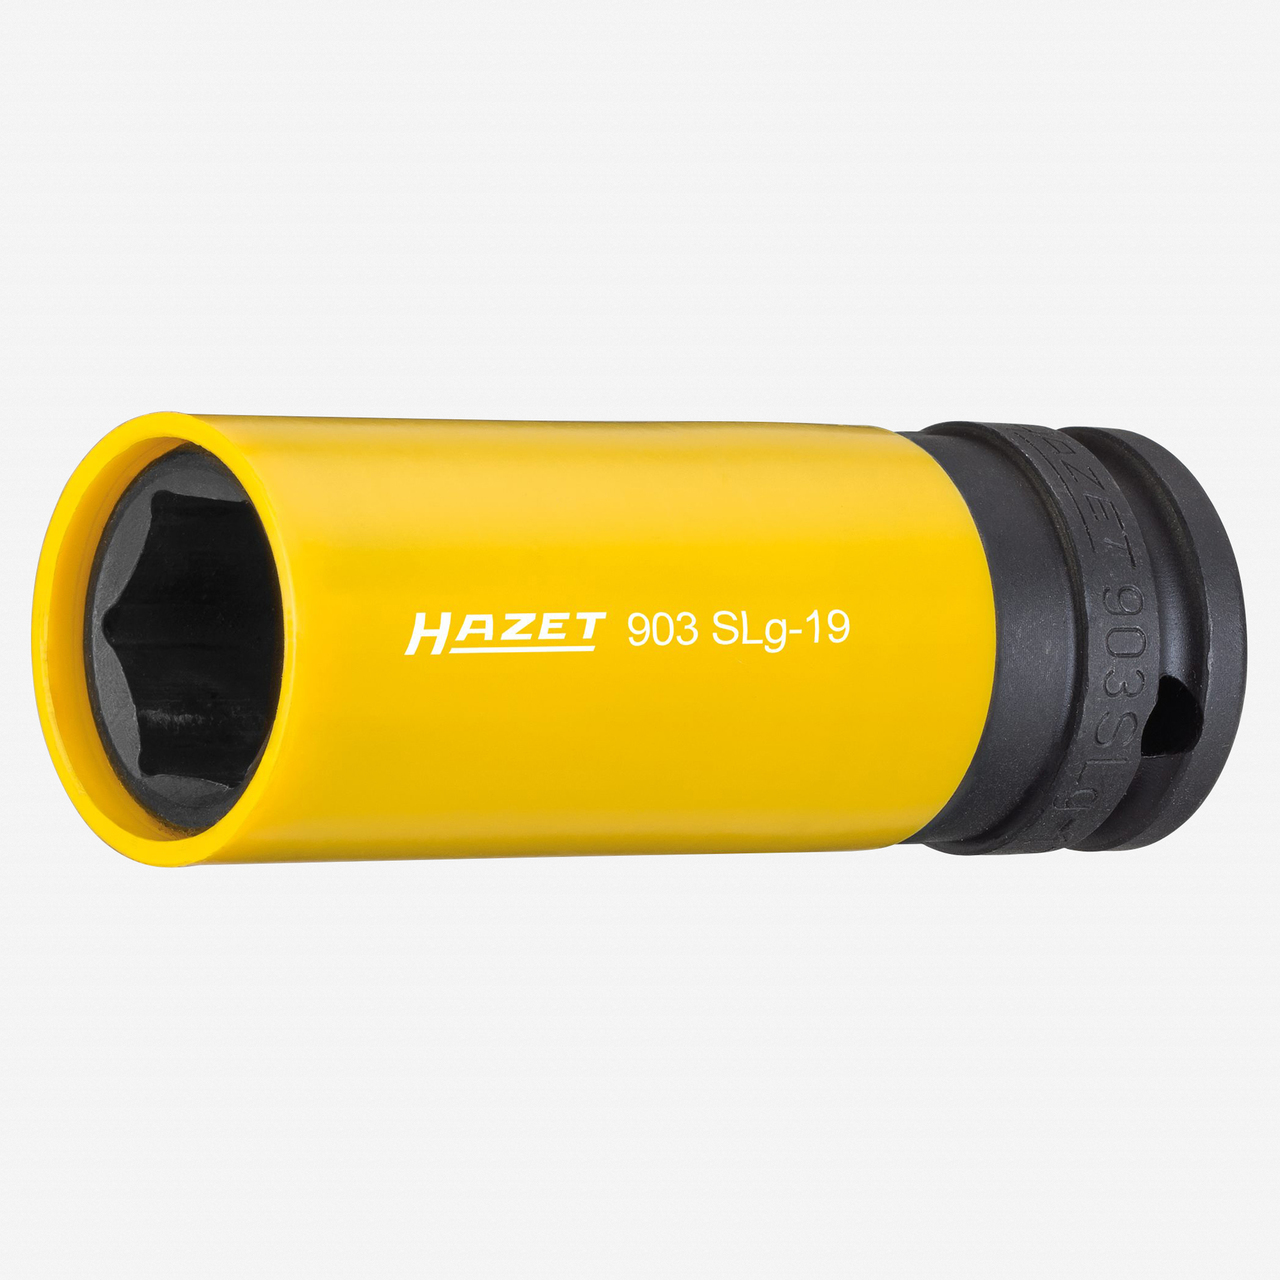 "Hazet 903SLG-19 Impact socket (6-point) 19mm x 1/2"" Lug Nut Impact Socket with Plastic Sleeve  - KC Tool"